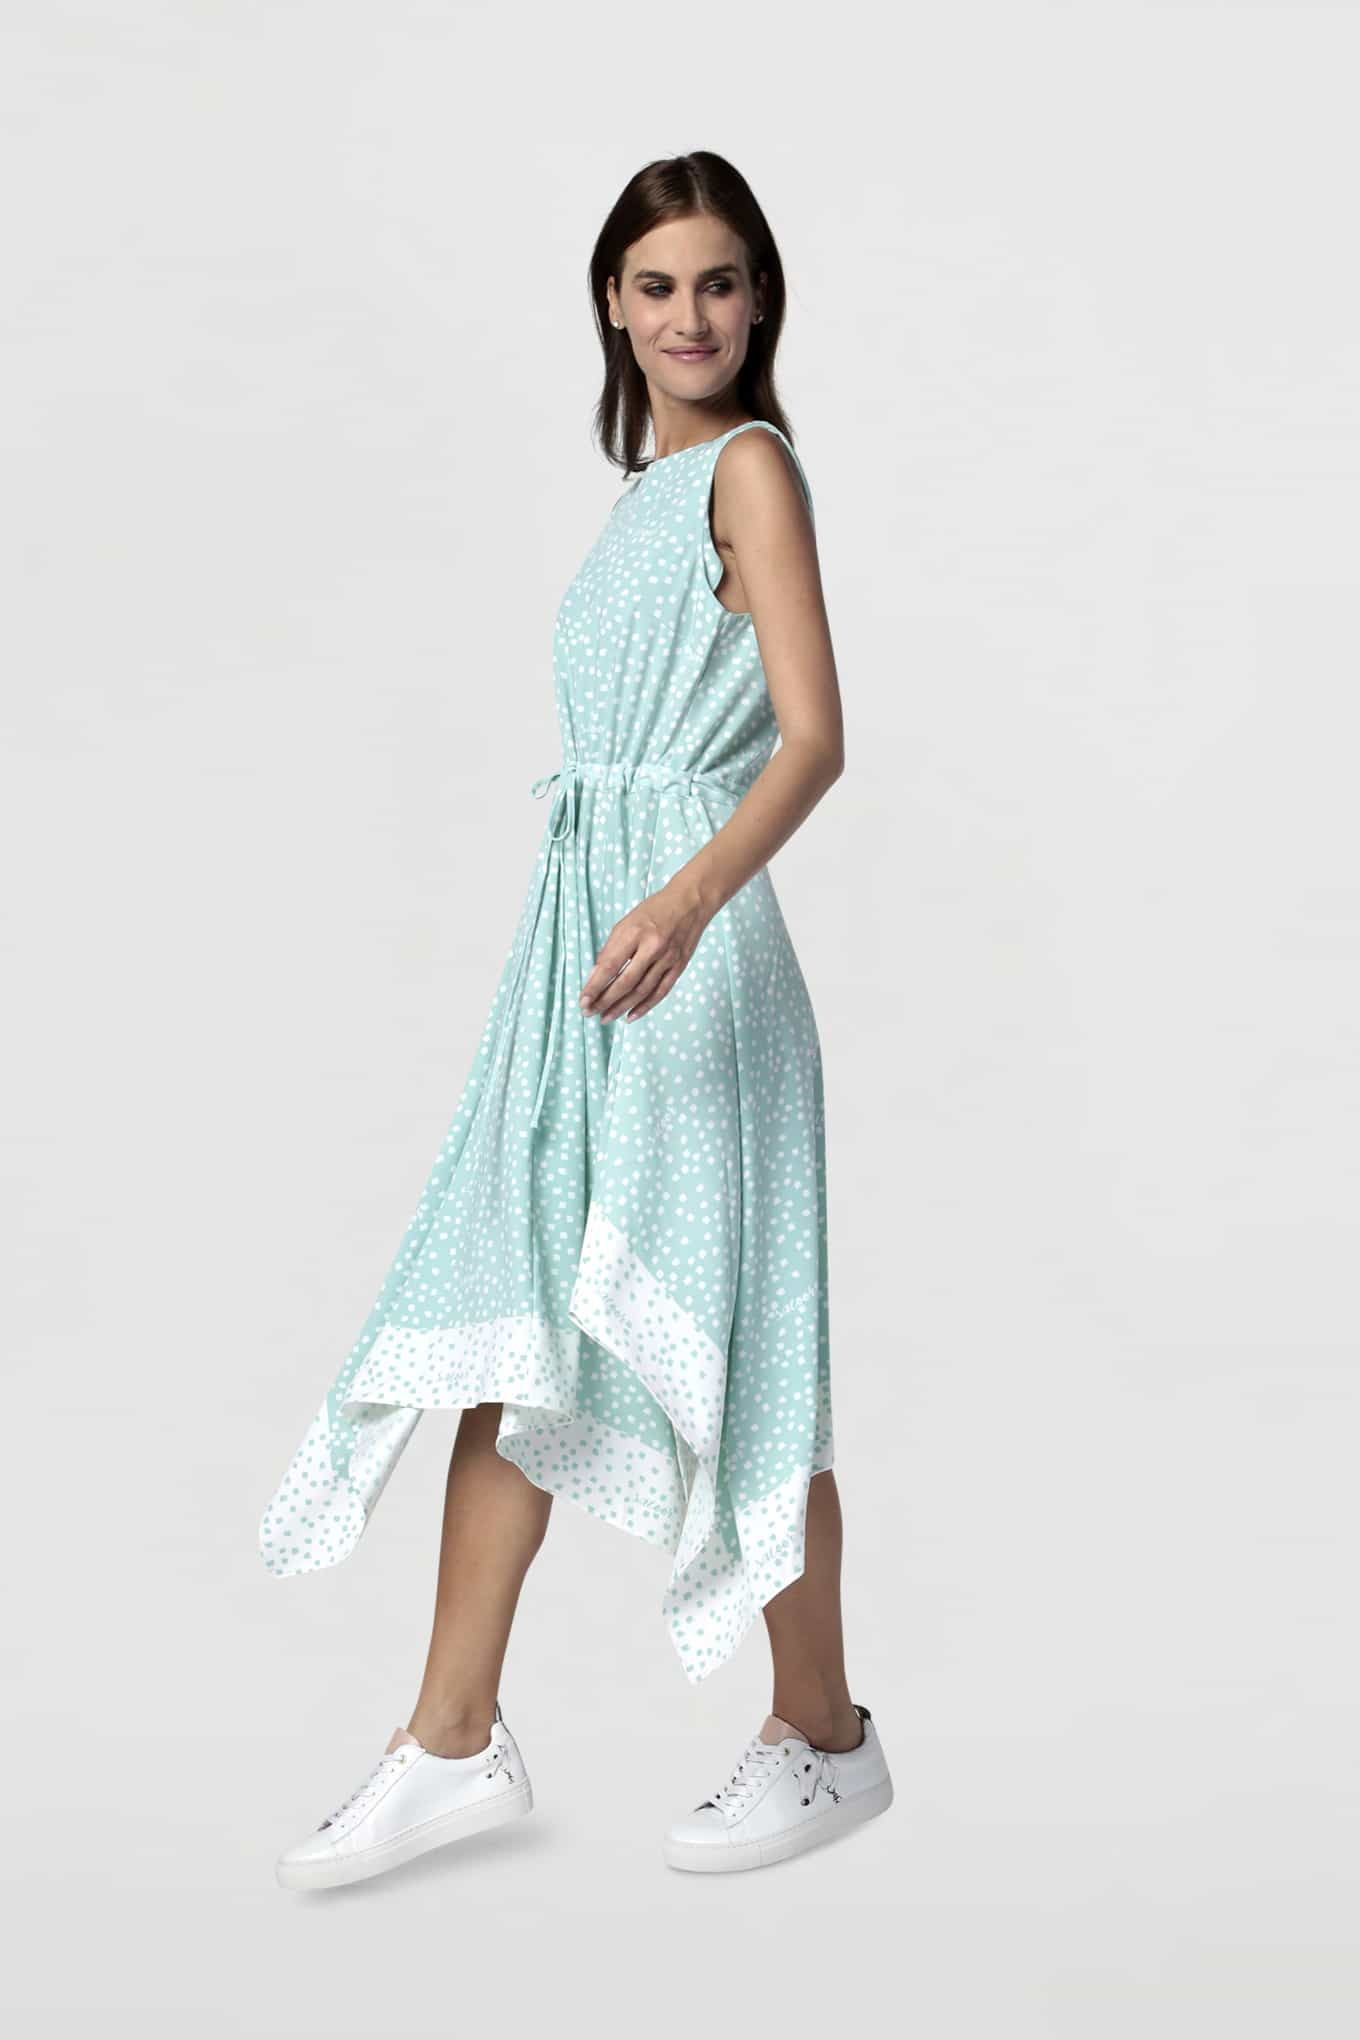 Dress Turquoise Fantasy Woman